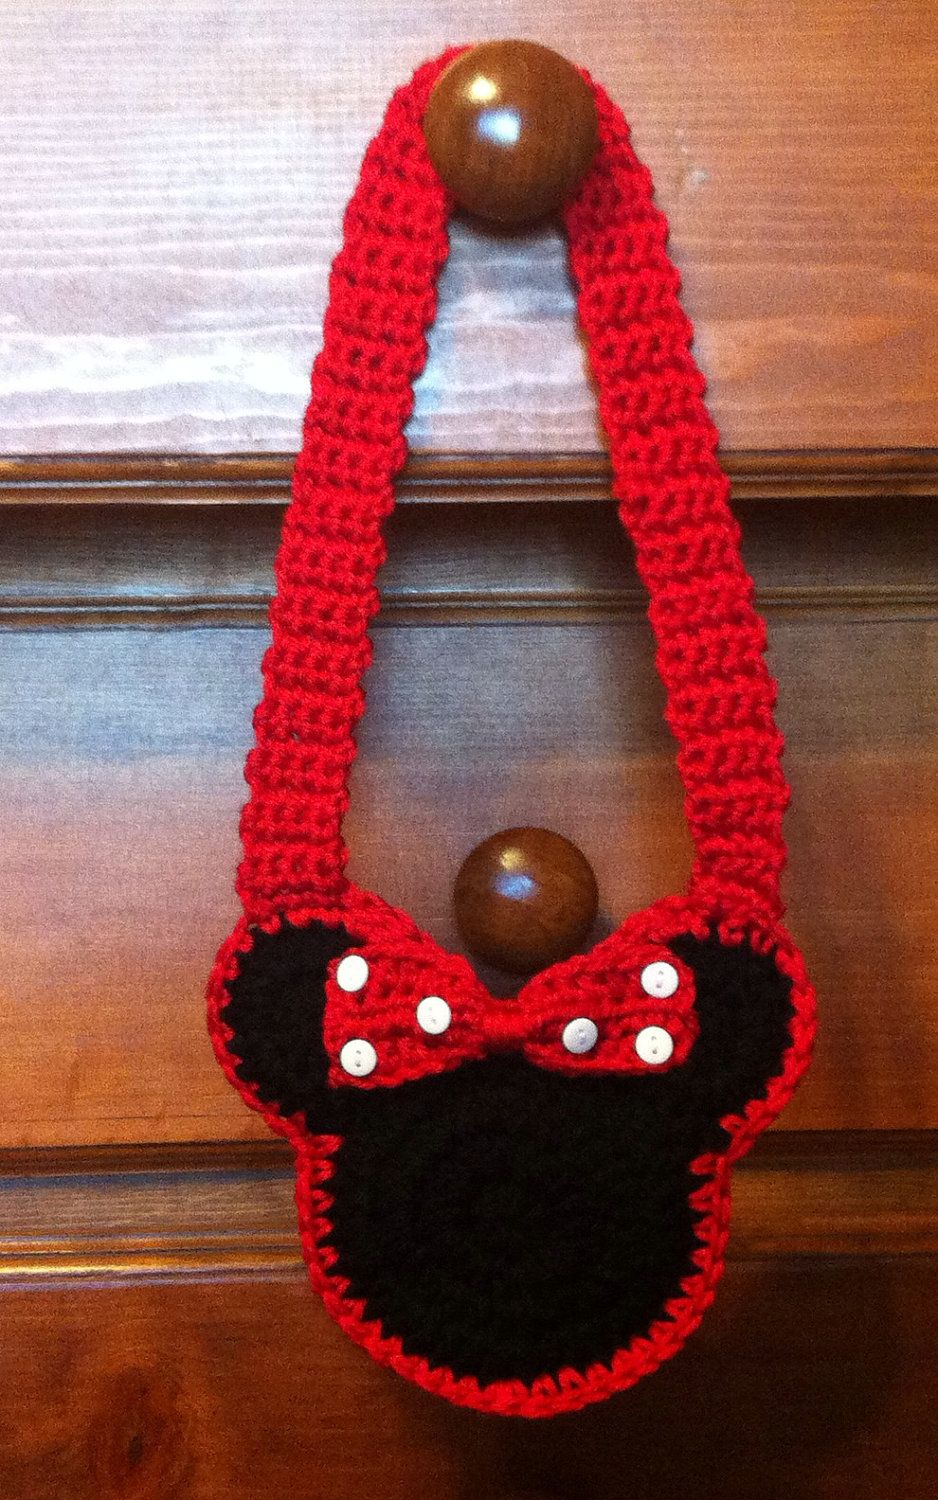 Minnie mouse childs crochet purse i need to figure this out minnie mouse childs crochet purse i need to figure this out before emmys birthday bankloansurffo Choice Image